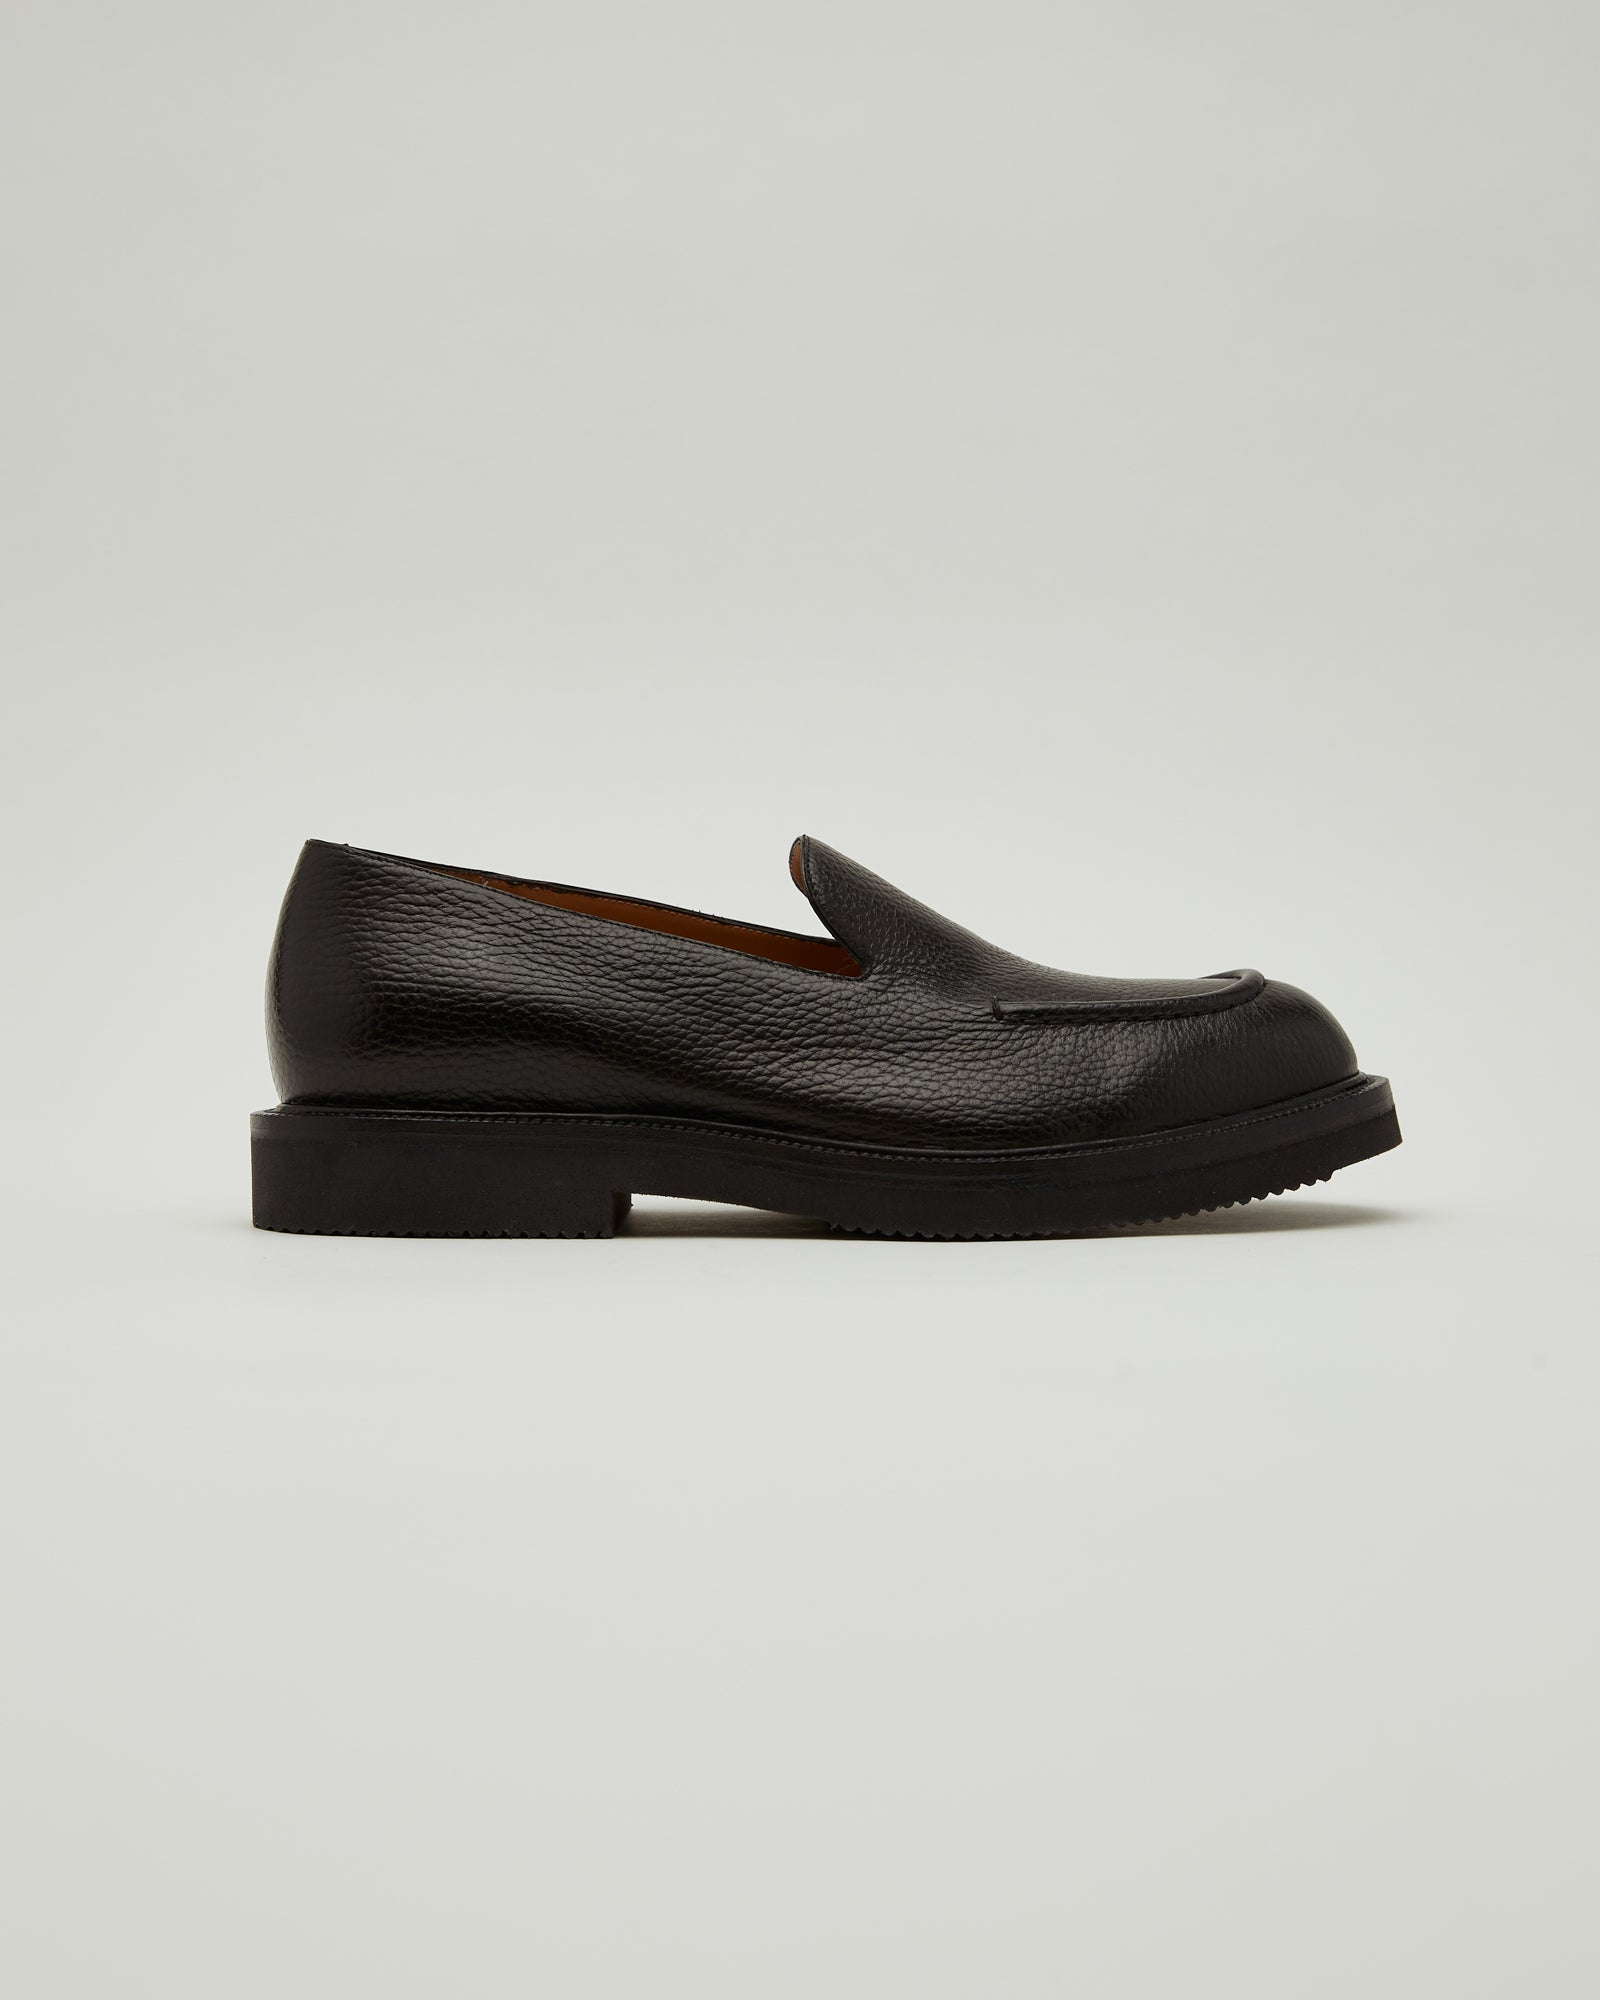 Pebble Grained Leather Loafers in Black